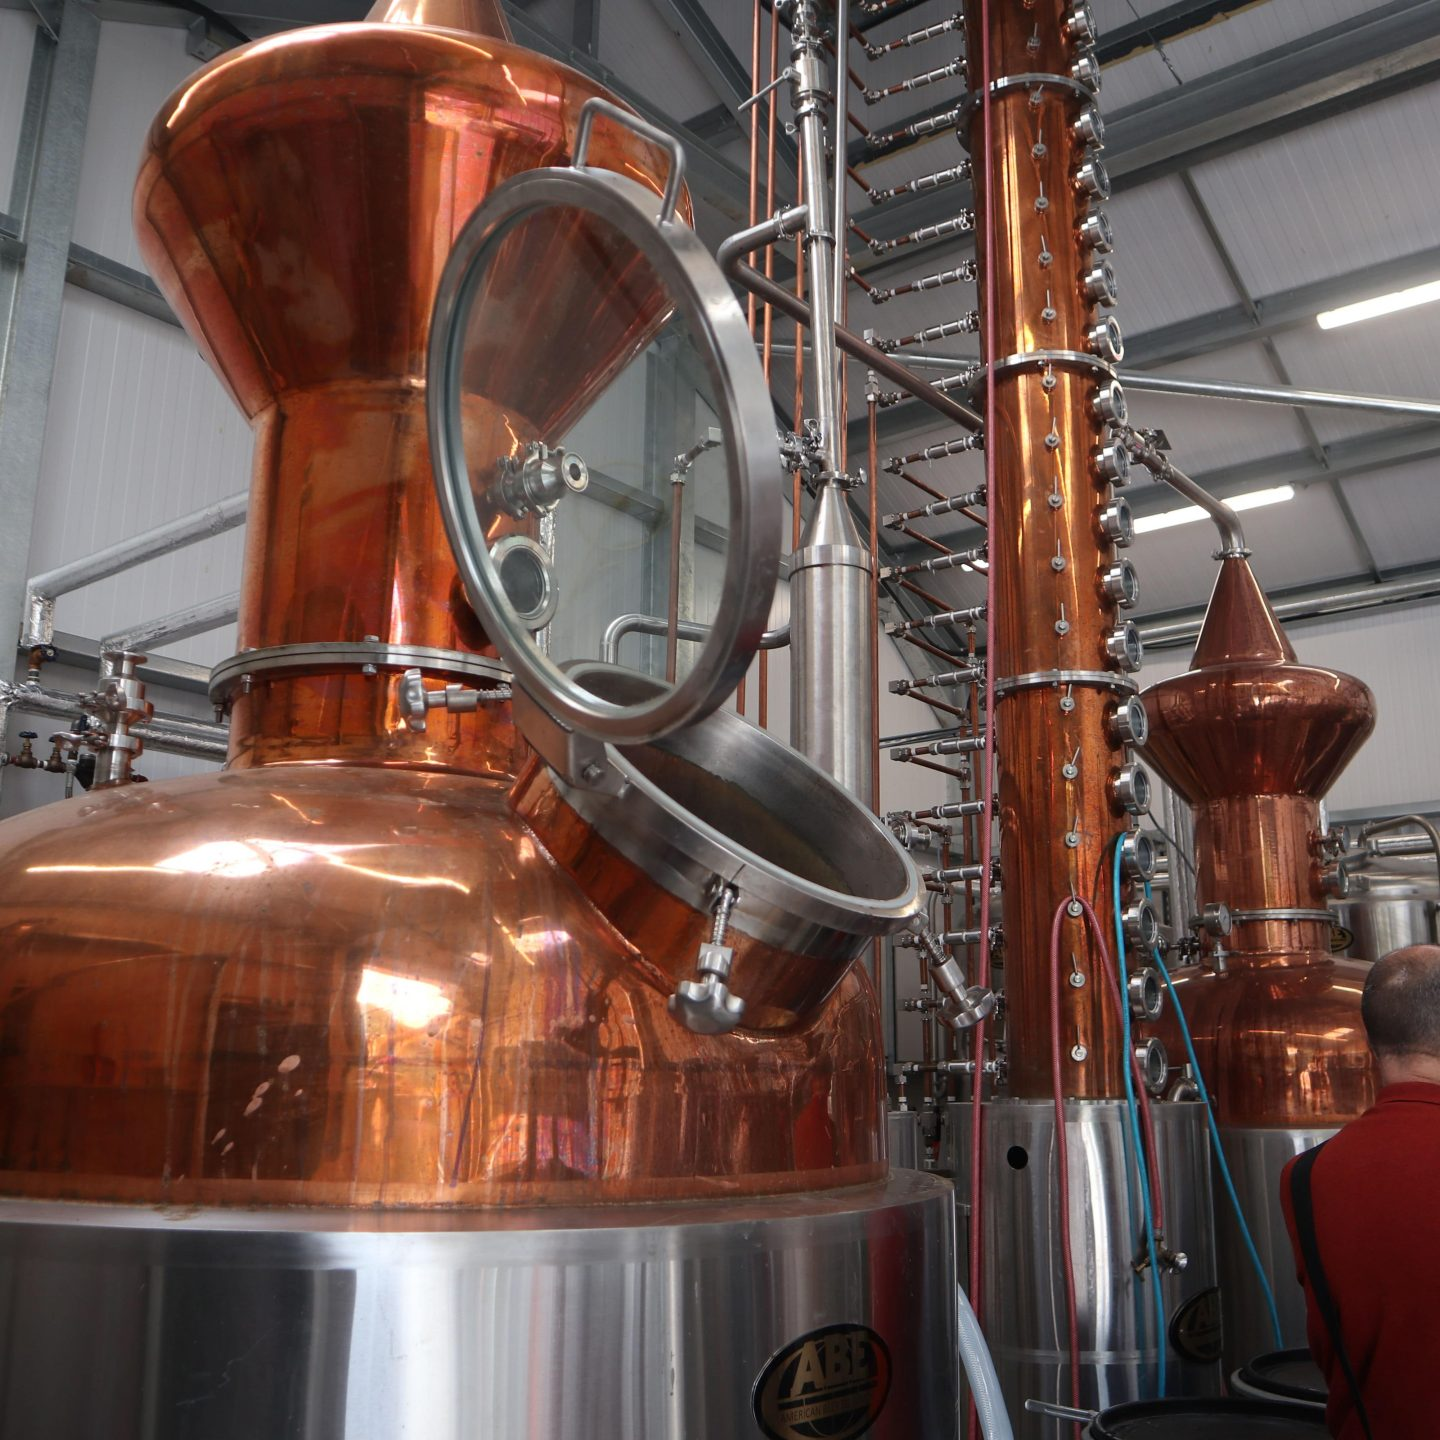 Visiting the shining copper stills on the gin distillery tour at Whittaker's Gin